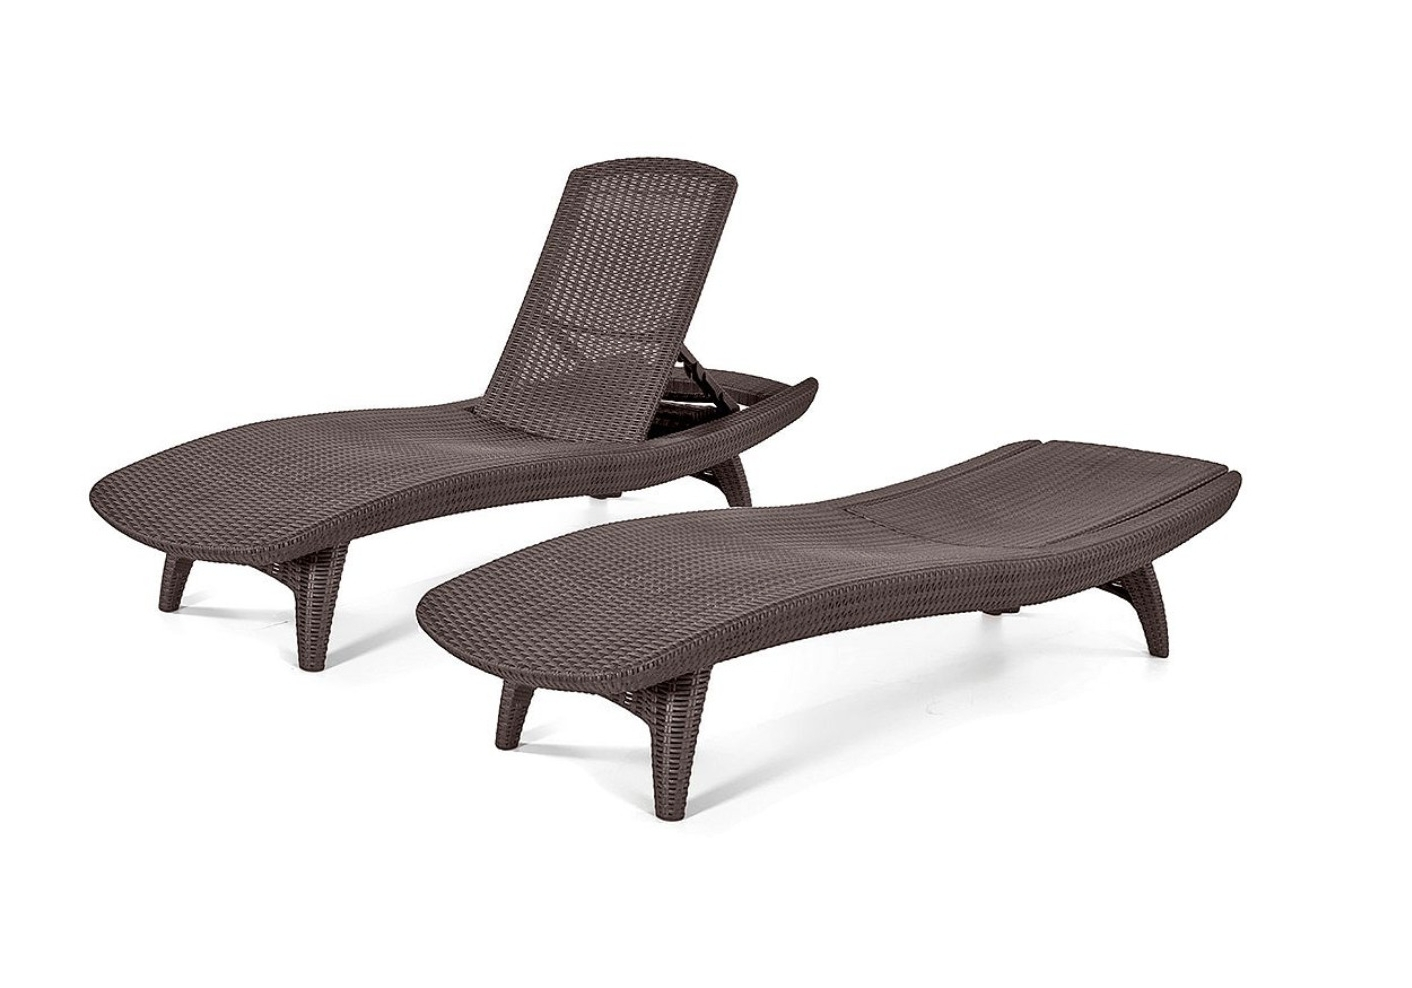 Well Known Keter Chaise Lounge Chairs Pertaining To 2 Chaise Keter Lounge Chairs Outdoor Brown Wicker Adjustable Back (View 9 of 15)